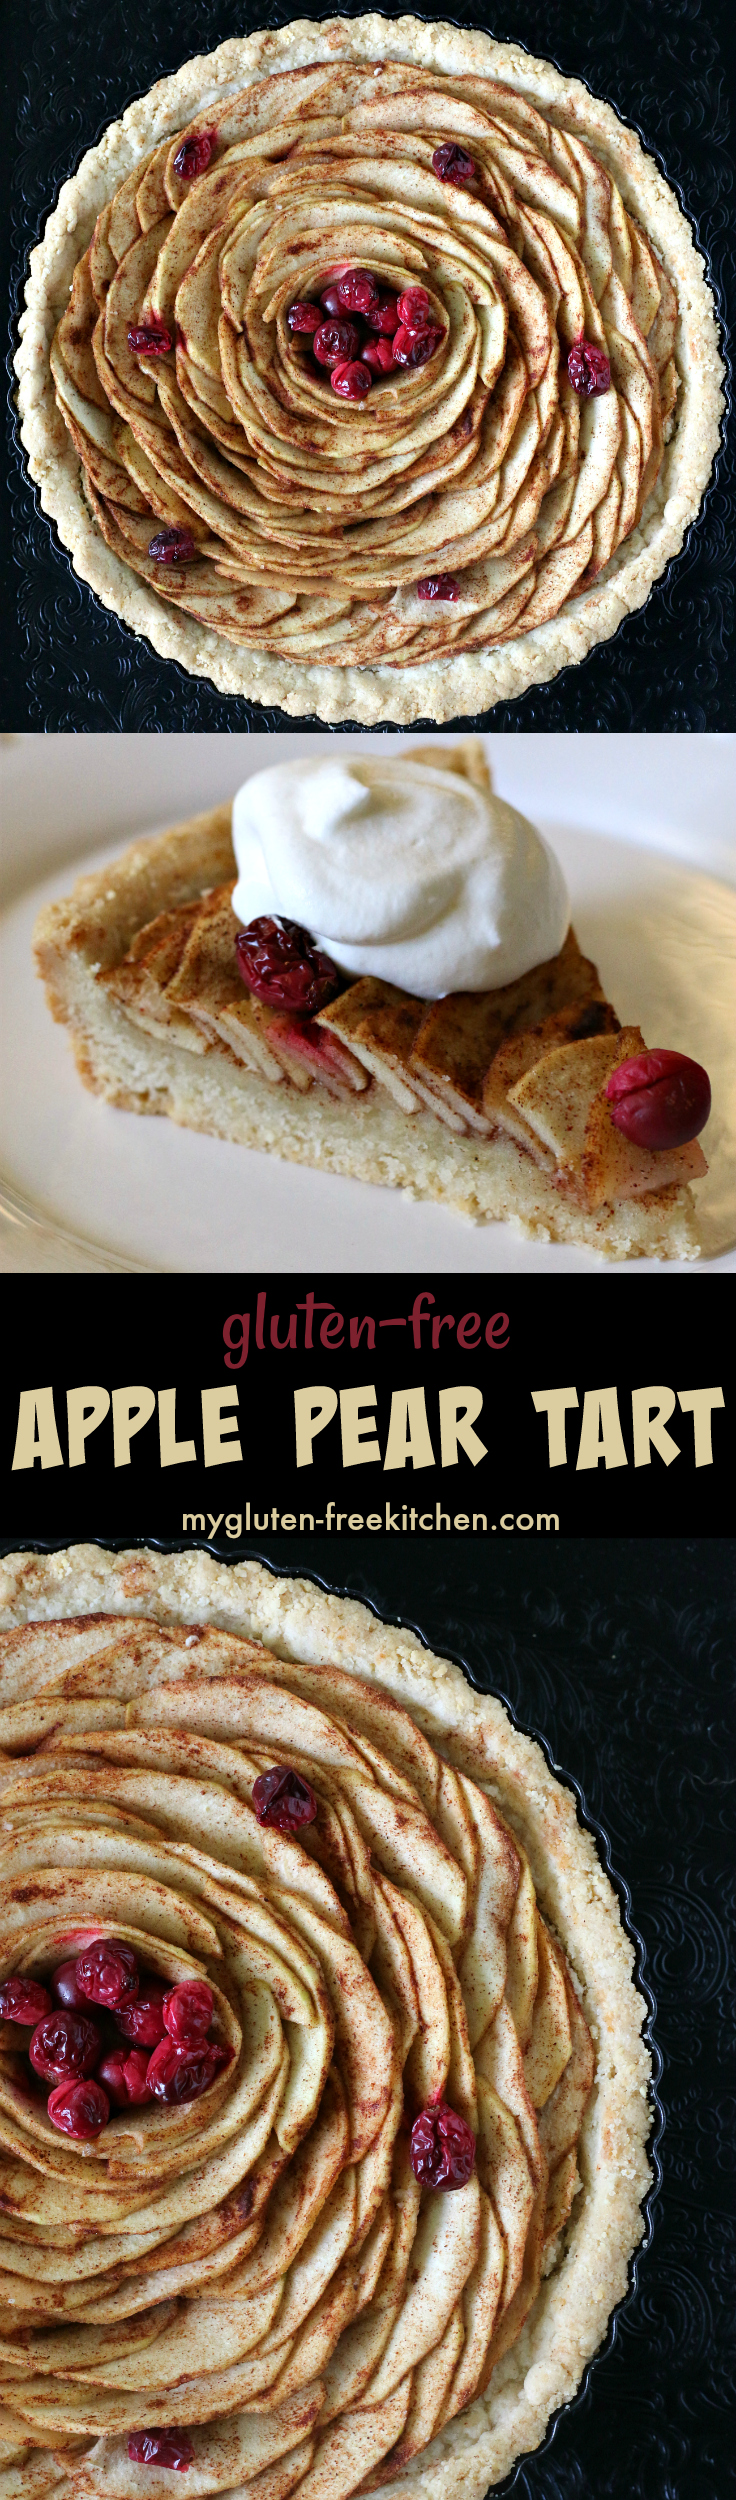 Gluten-free Apple Pear Tart with Cranberries recipe for fall. #glutenfreerecipe